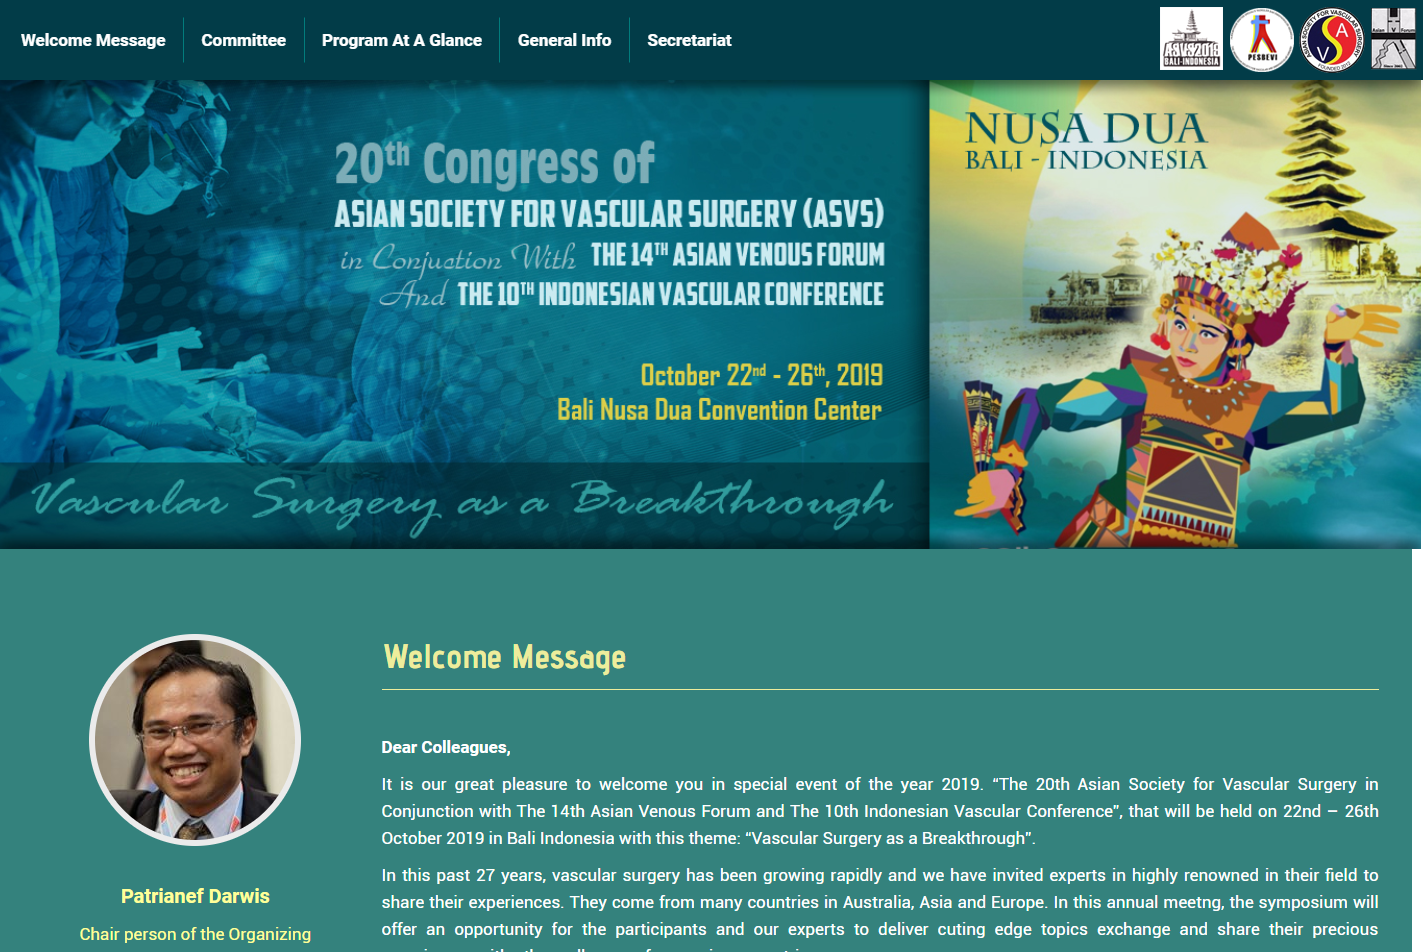 ASVS – 20th Congress of Asian Society for Vascular Surgery